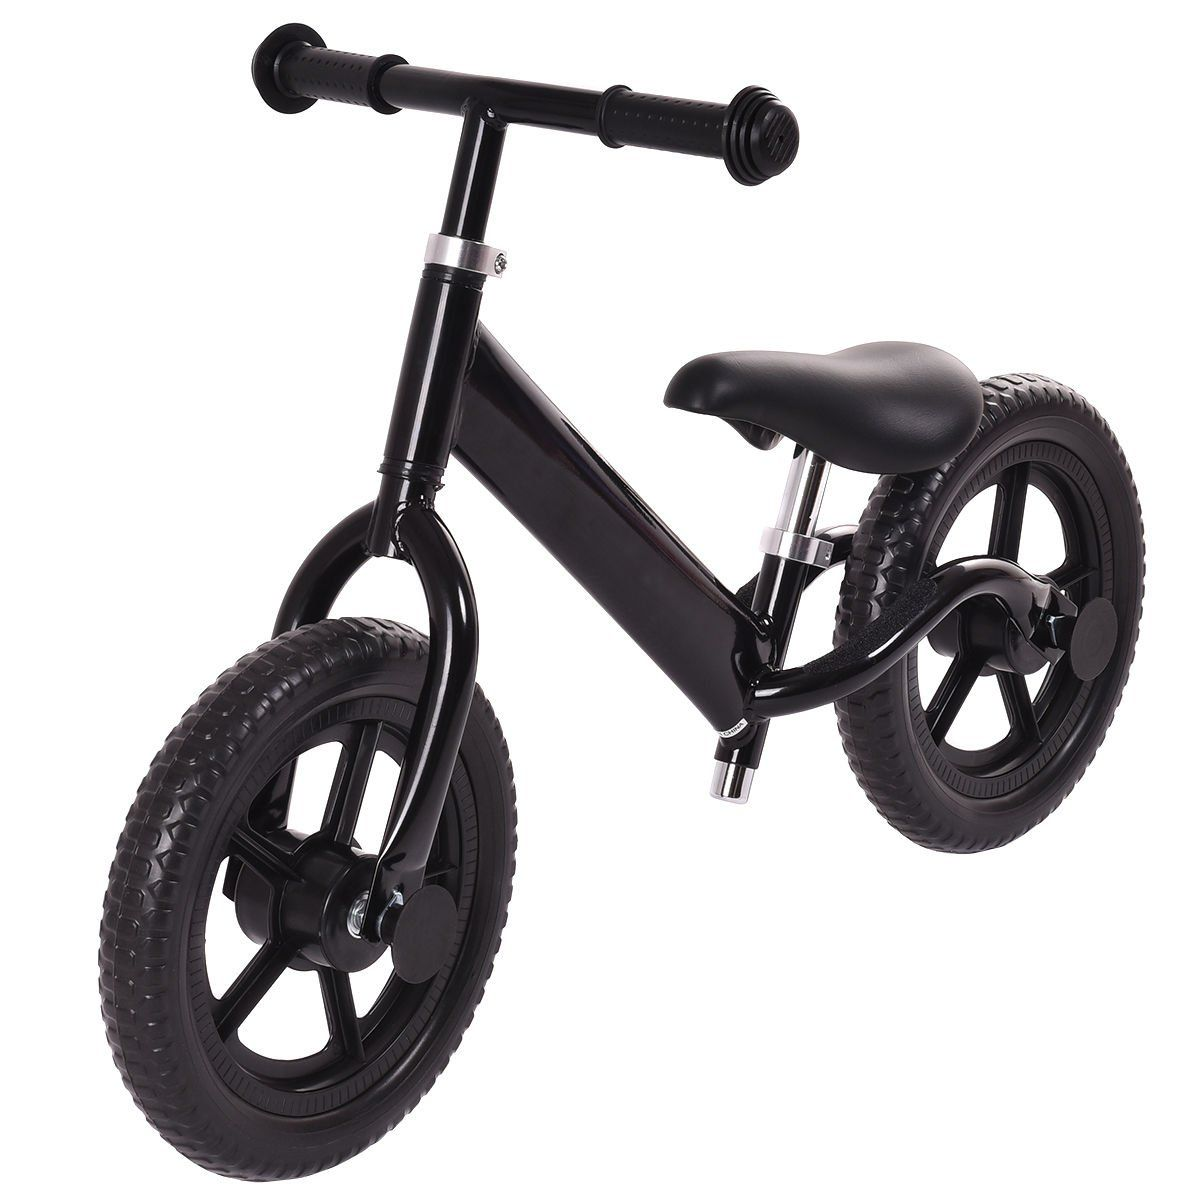 Costzon 12 Classic Nopedal Balance Bike Walking Bicycle For Kids Age 27 W Adjustable Seat Black Want To Know More Balance Bike Kids Bicycle Walking Bicycle